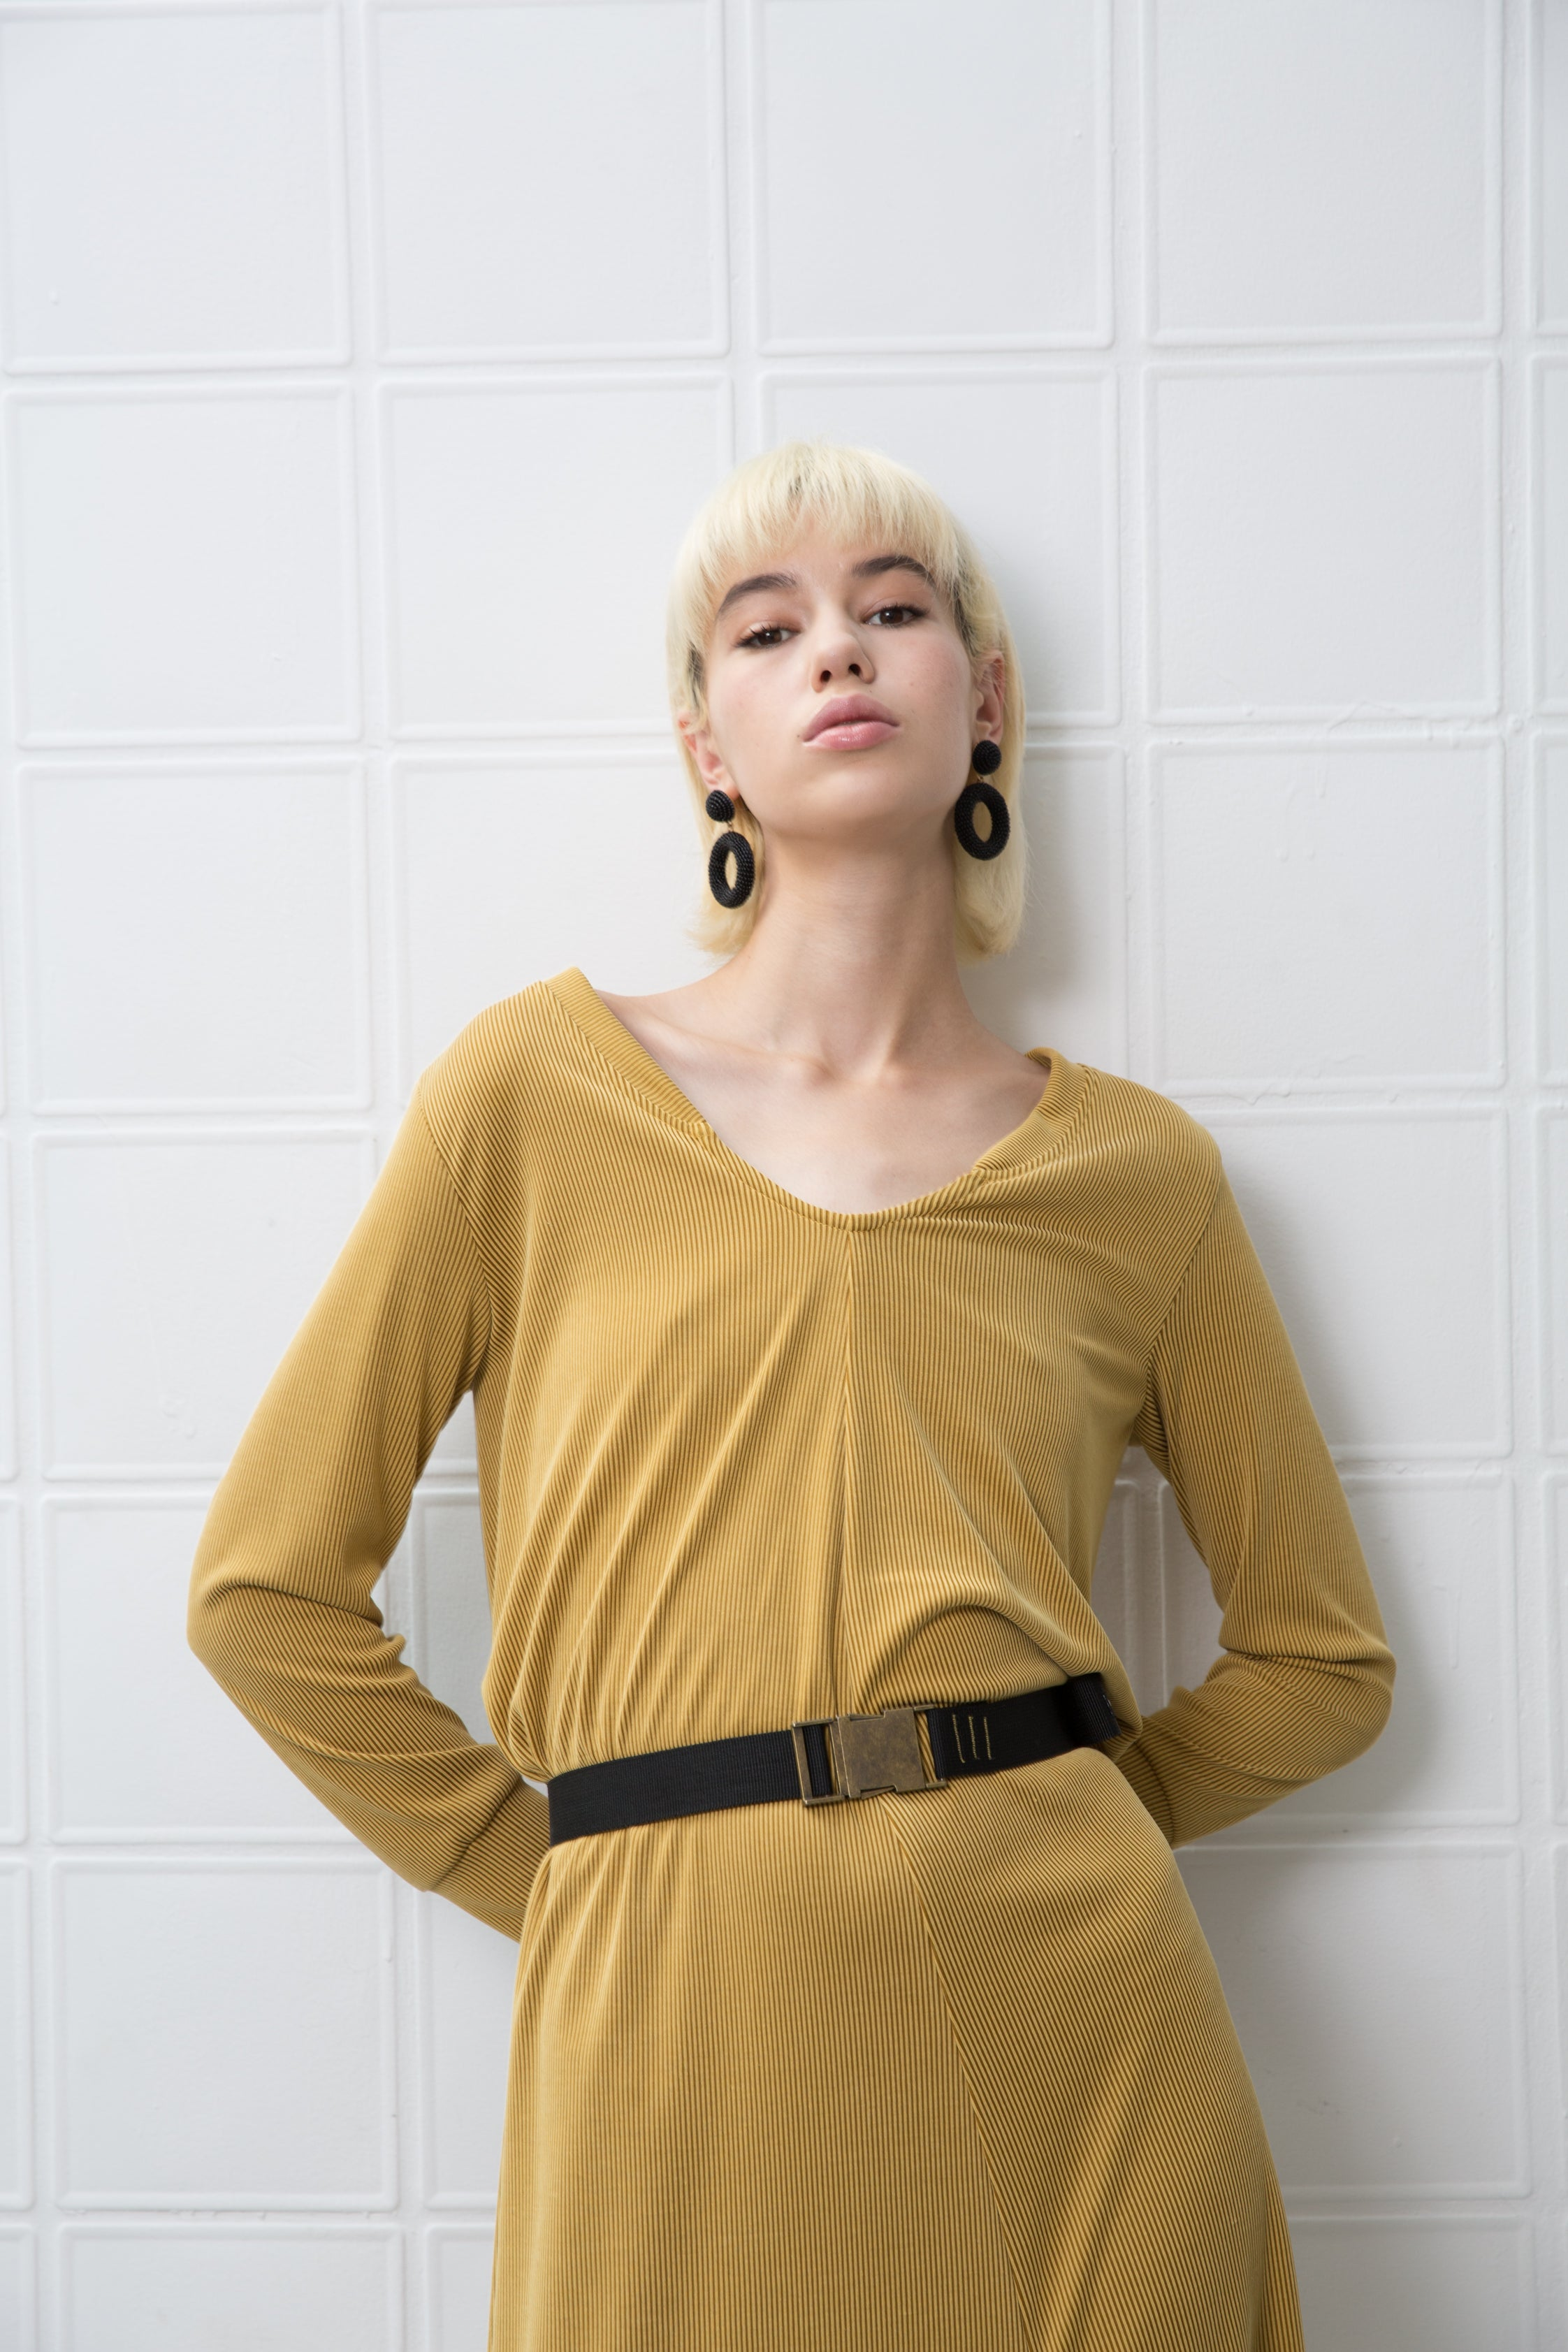 GOODIES Dress - mustard yellow - heroic-online